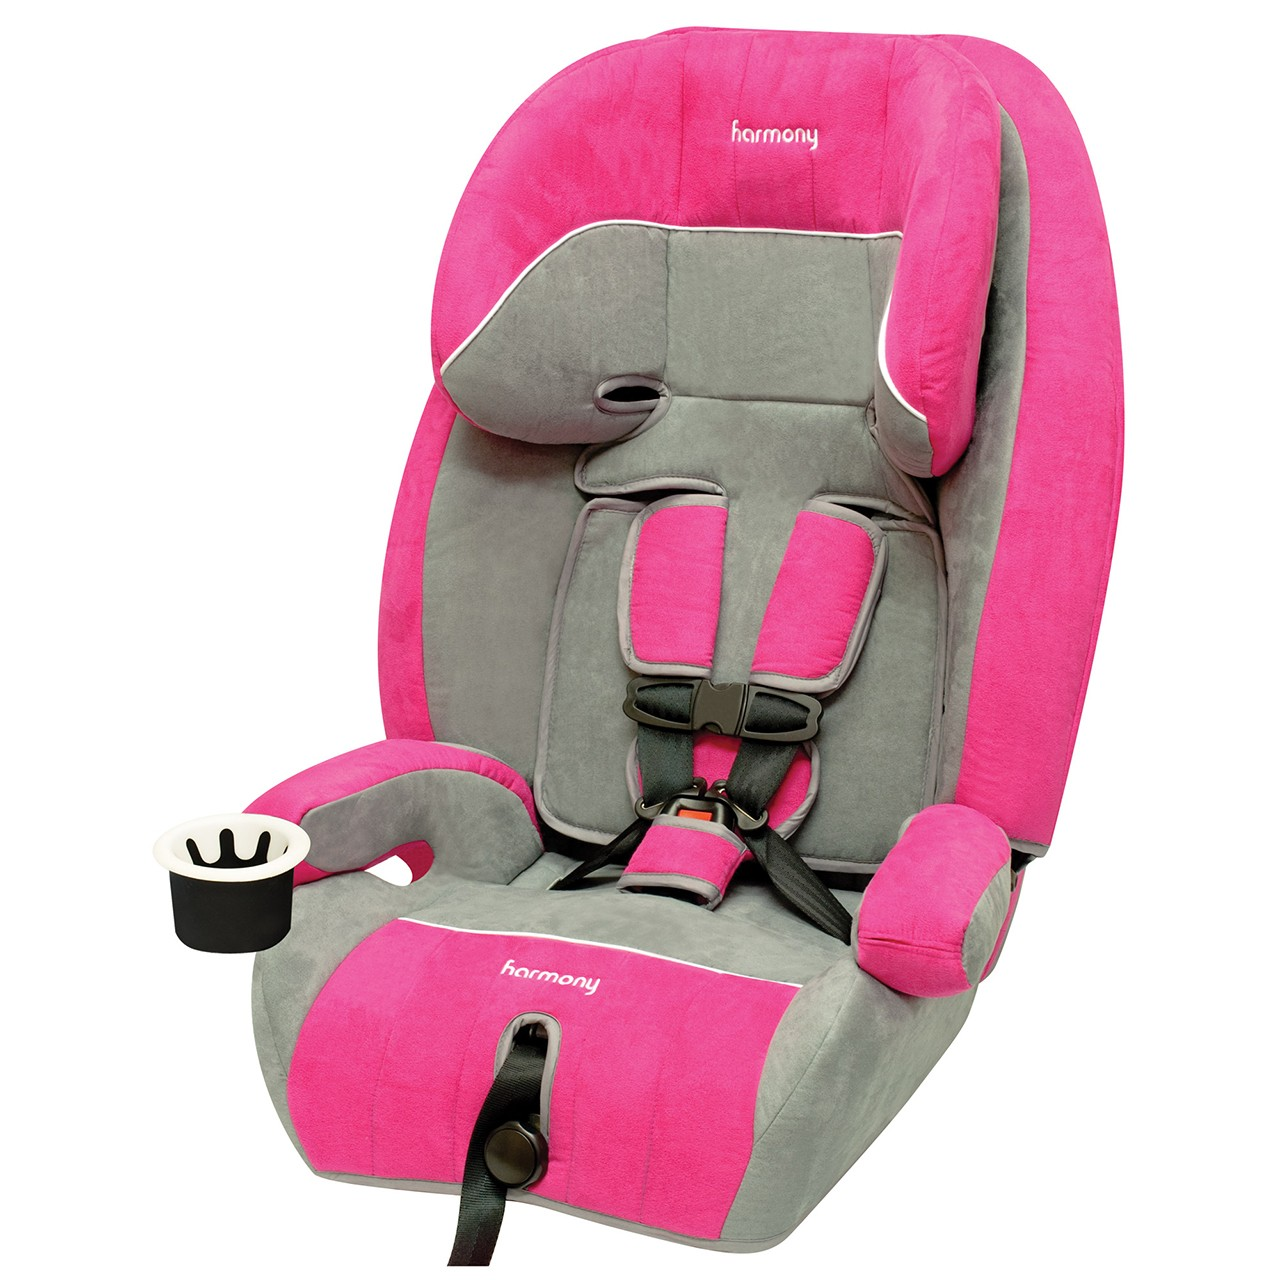 Booster Car Seat Canada Reviews